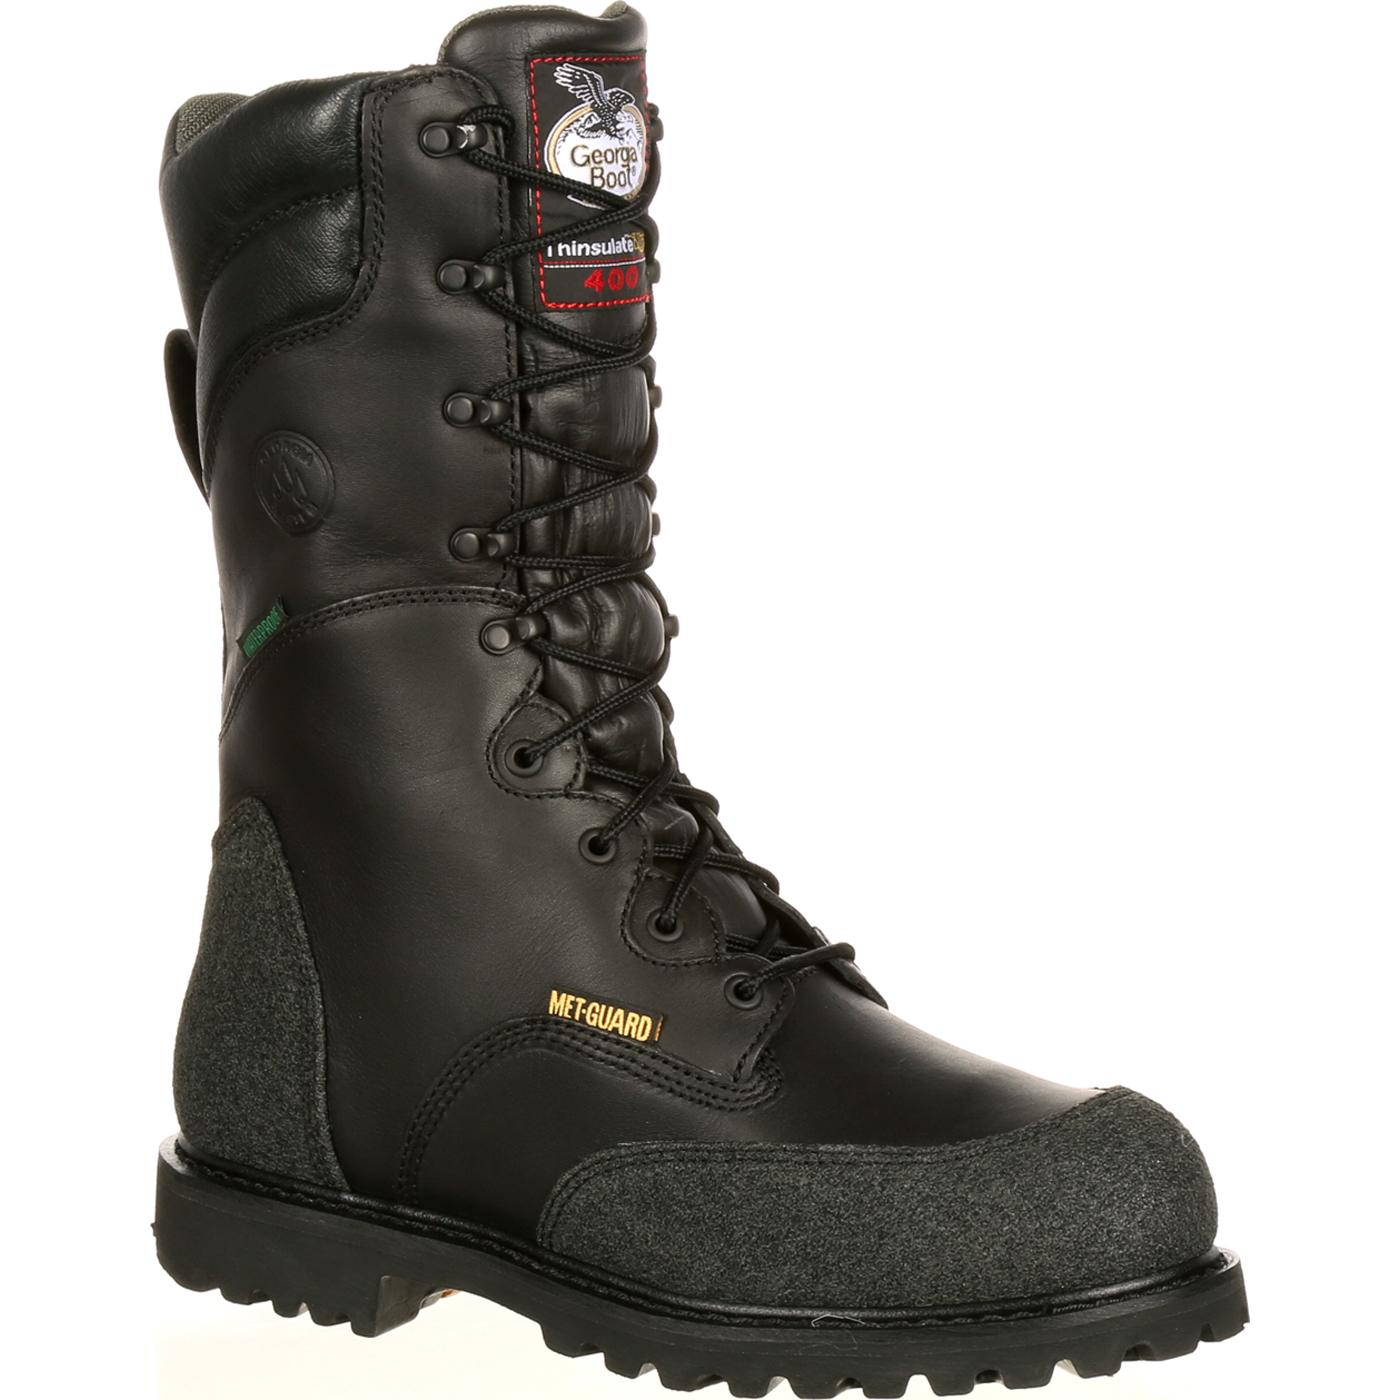 Met Guard Waterproof Insulated Miner Boot Georgia G9330